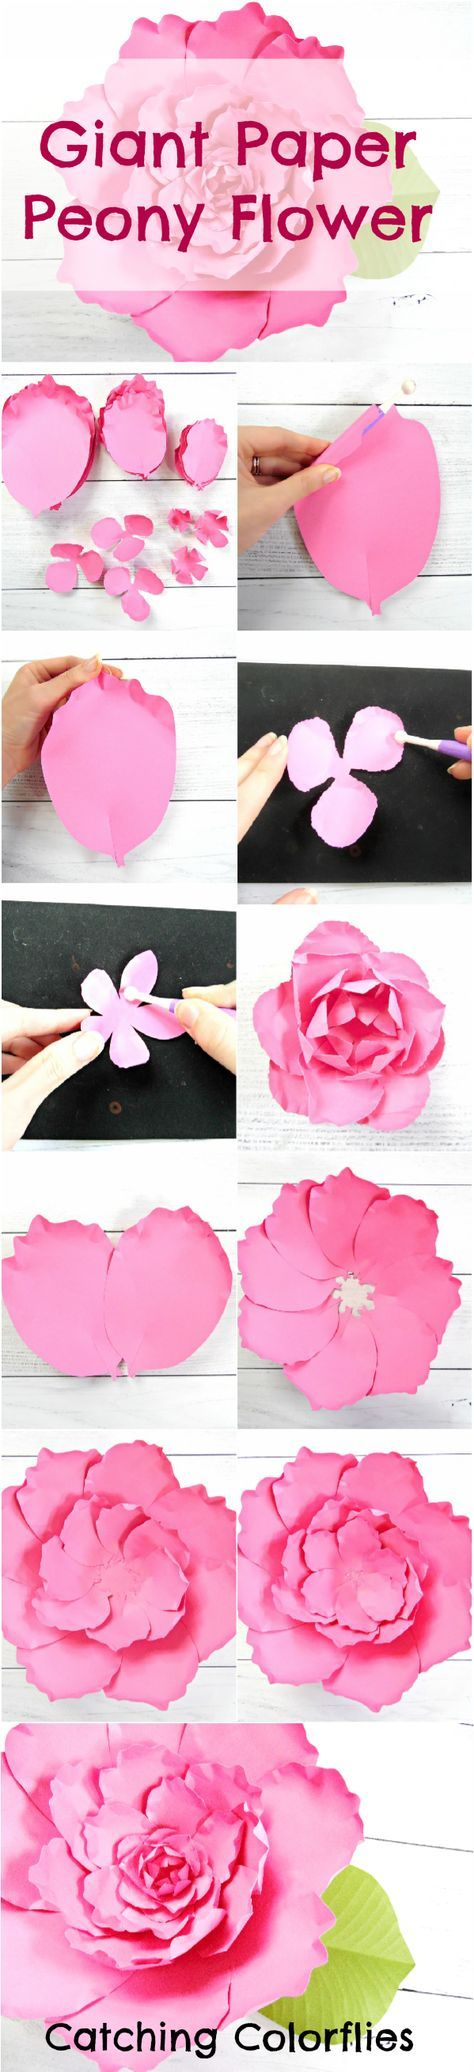 The 25 best paper flower templates ideas on pinterest paper giant paper flower peony how to make large paper peony flowers printable flower templates dhlflorist Choice Image